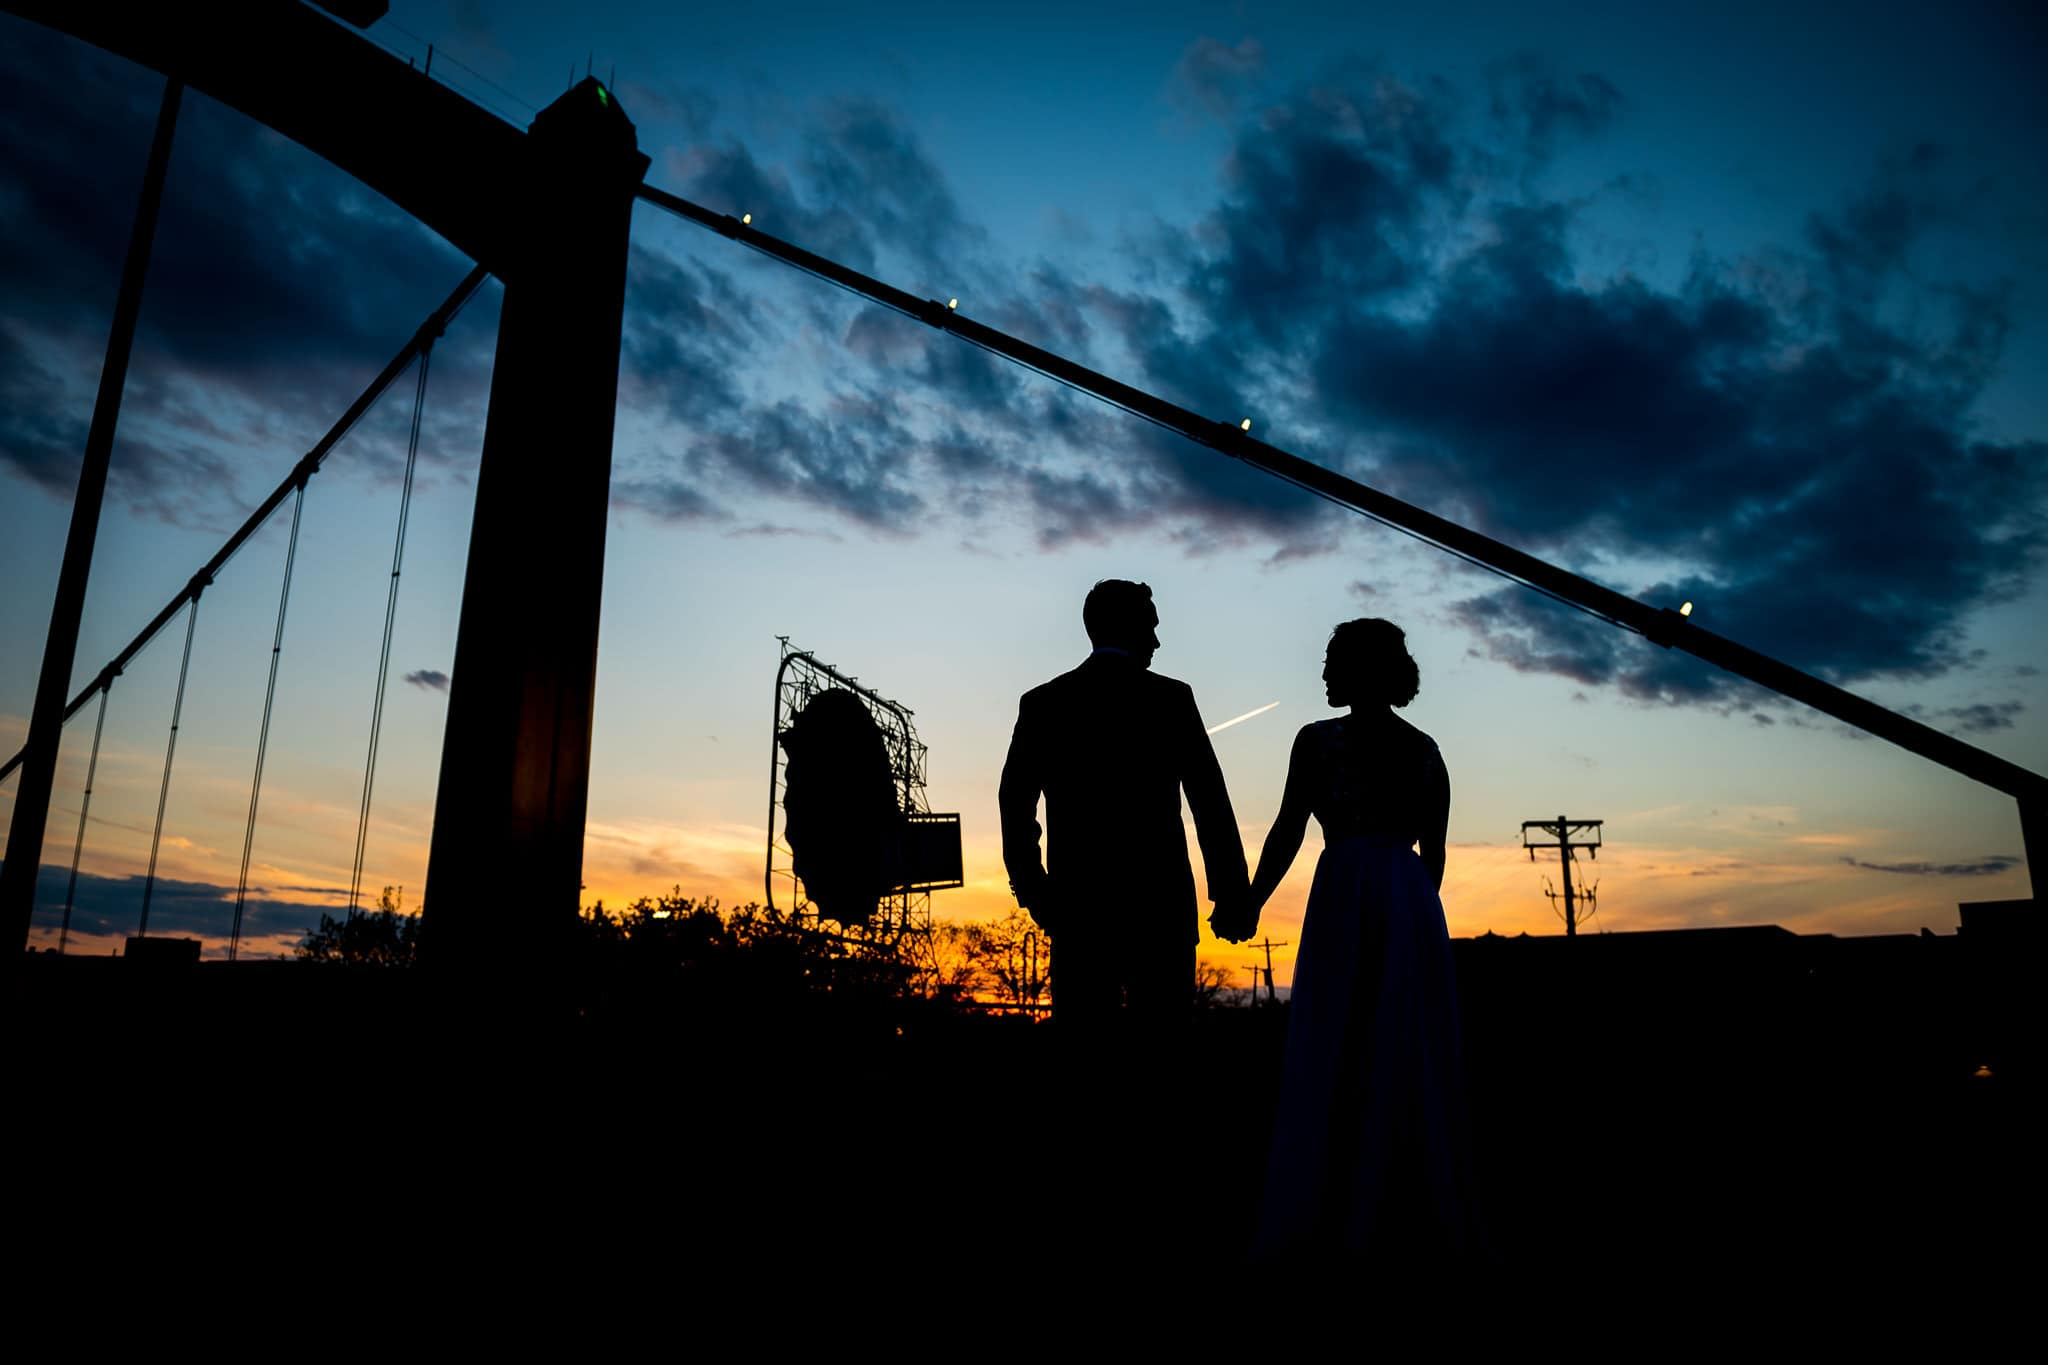 Bride and Groom Sunset Silhouette from the Hennepin Avenue Bridge with the Grain Belt Premium sign in the background